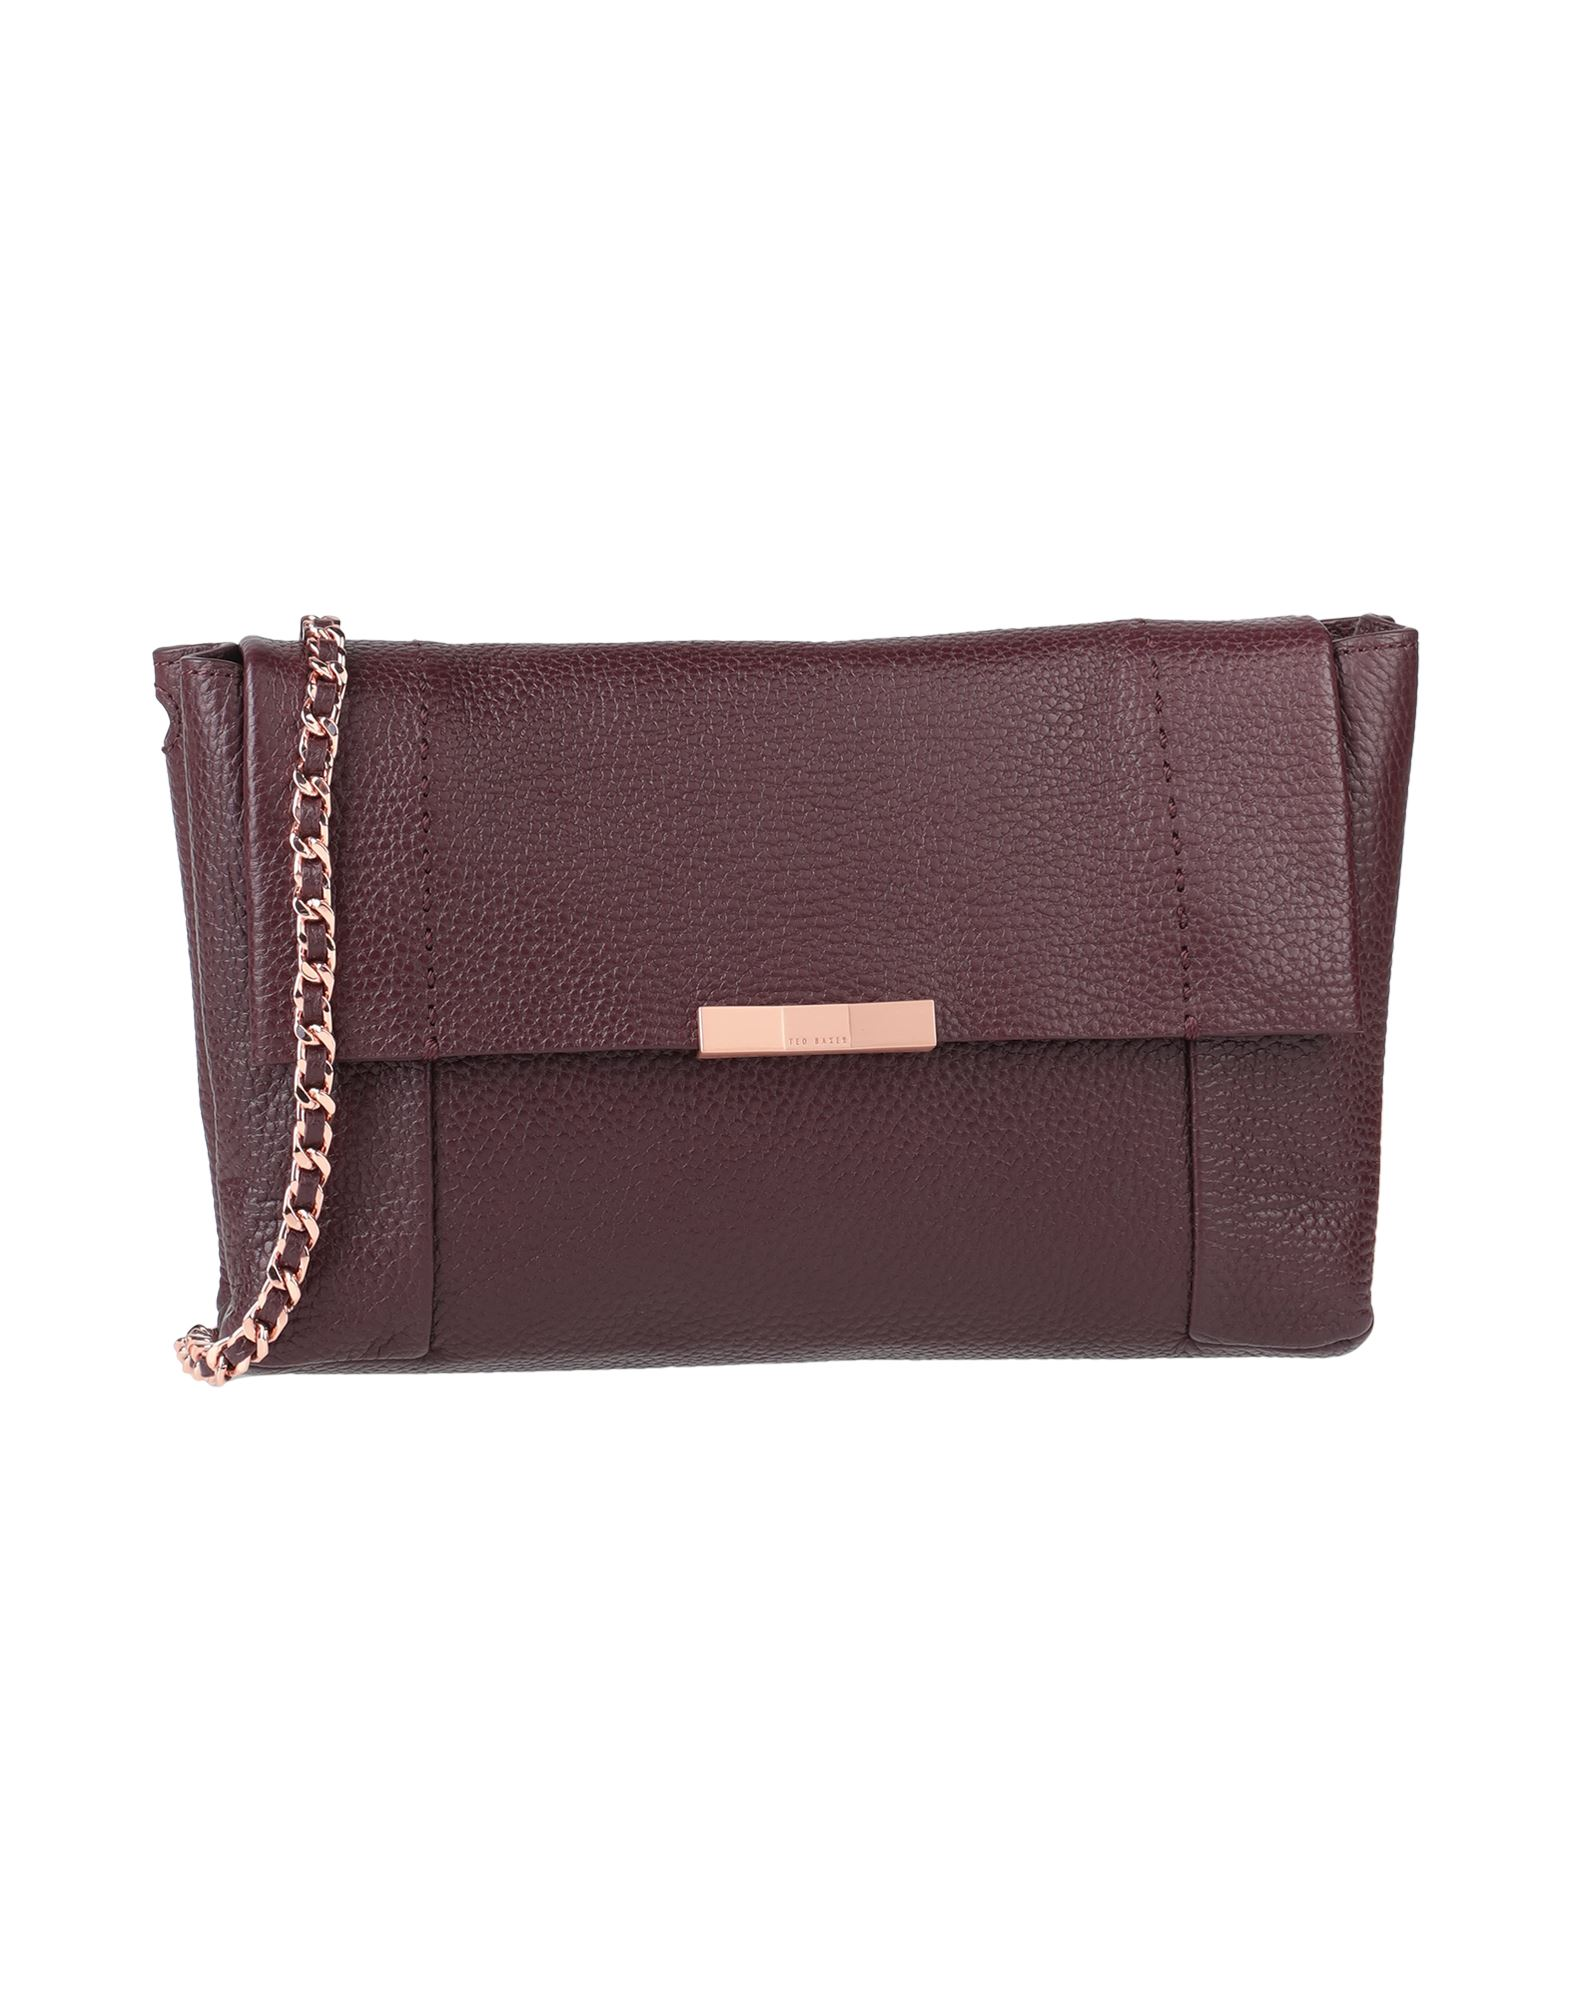 TED BAKER Handbags - Item 45551068